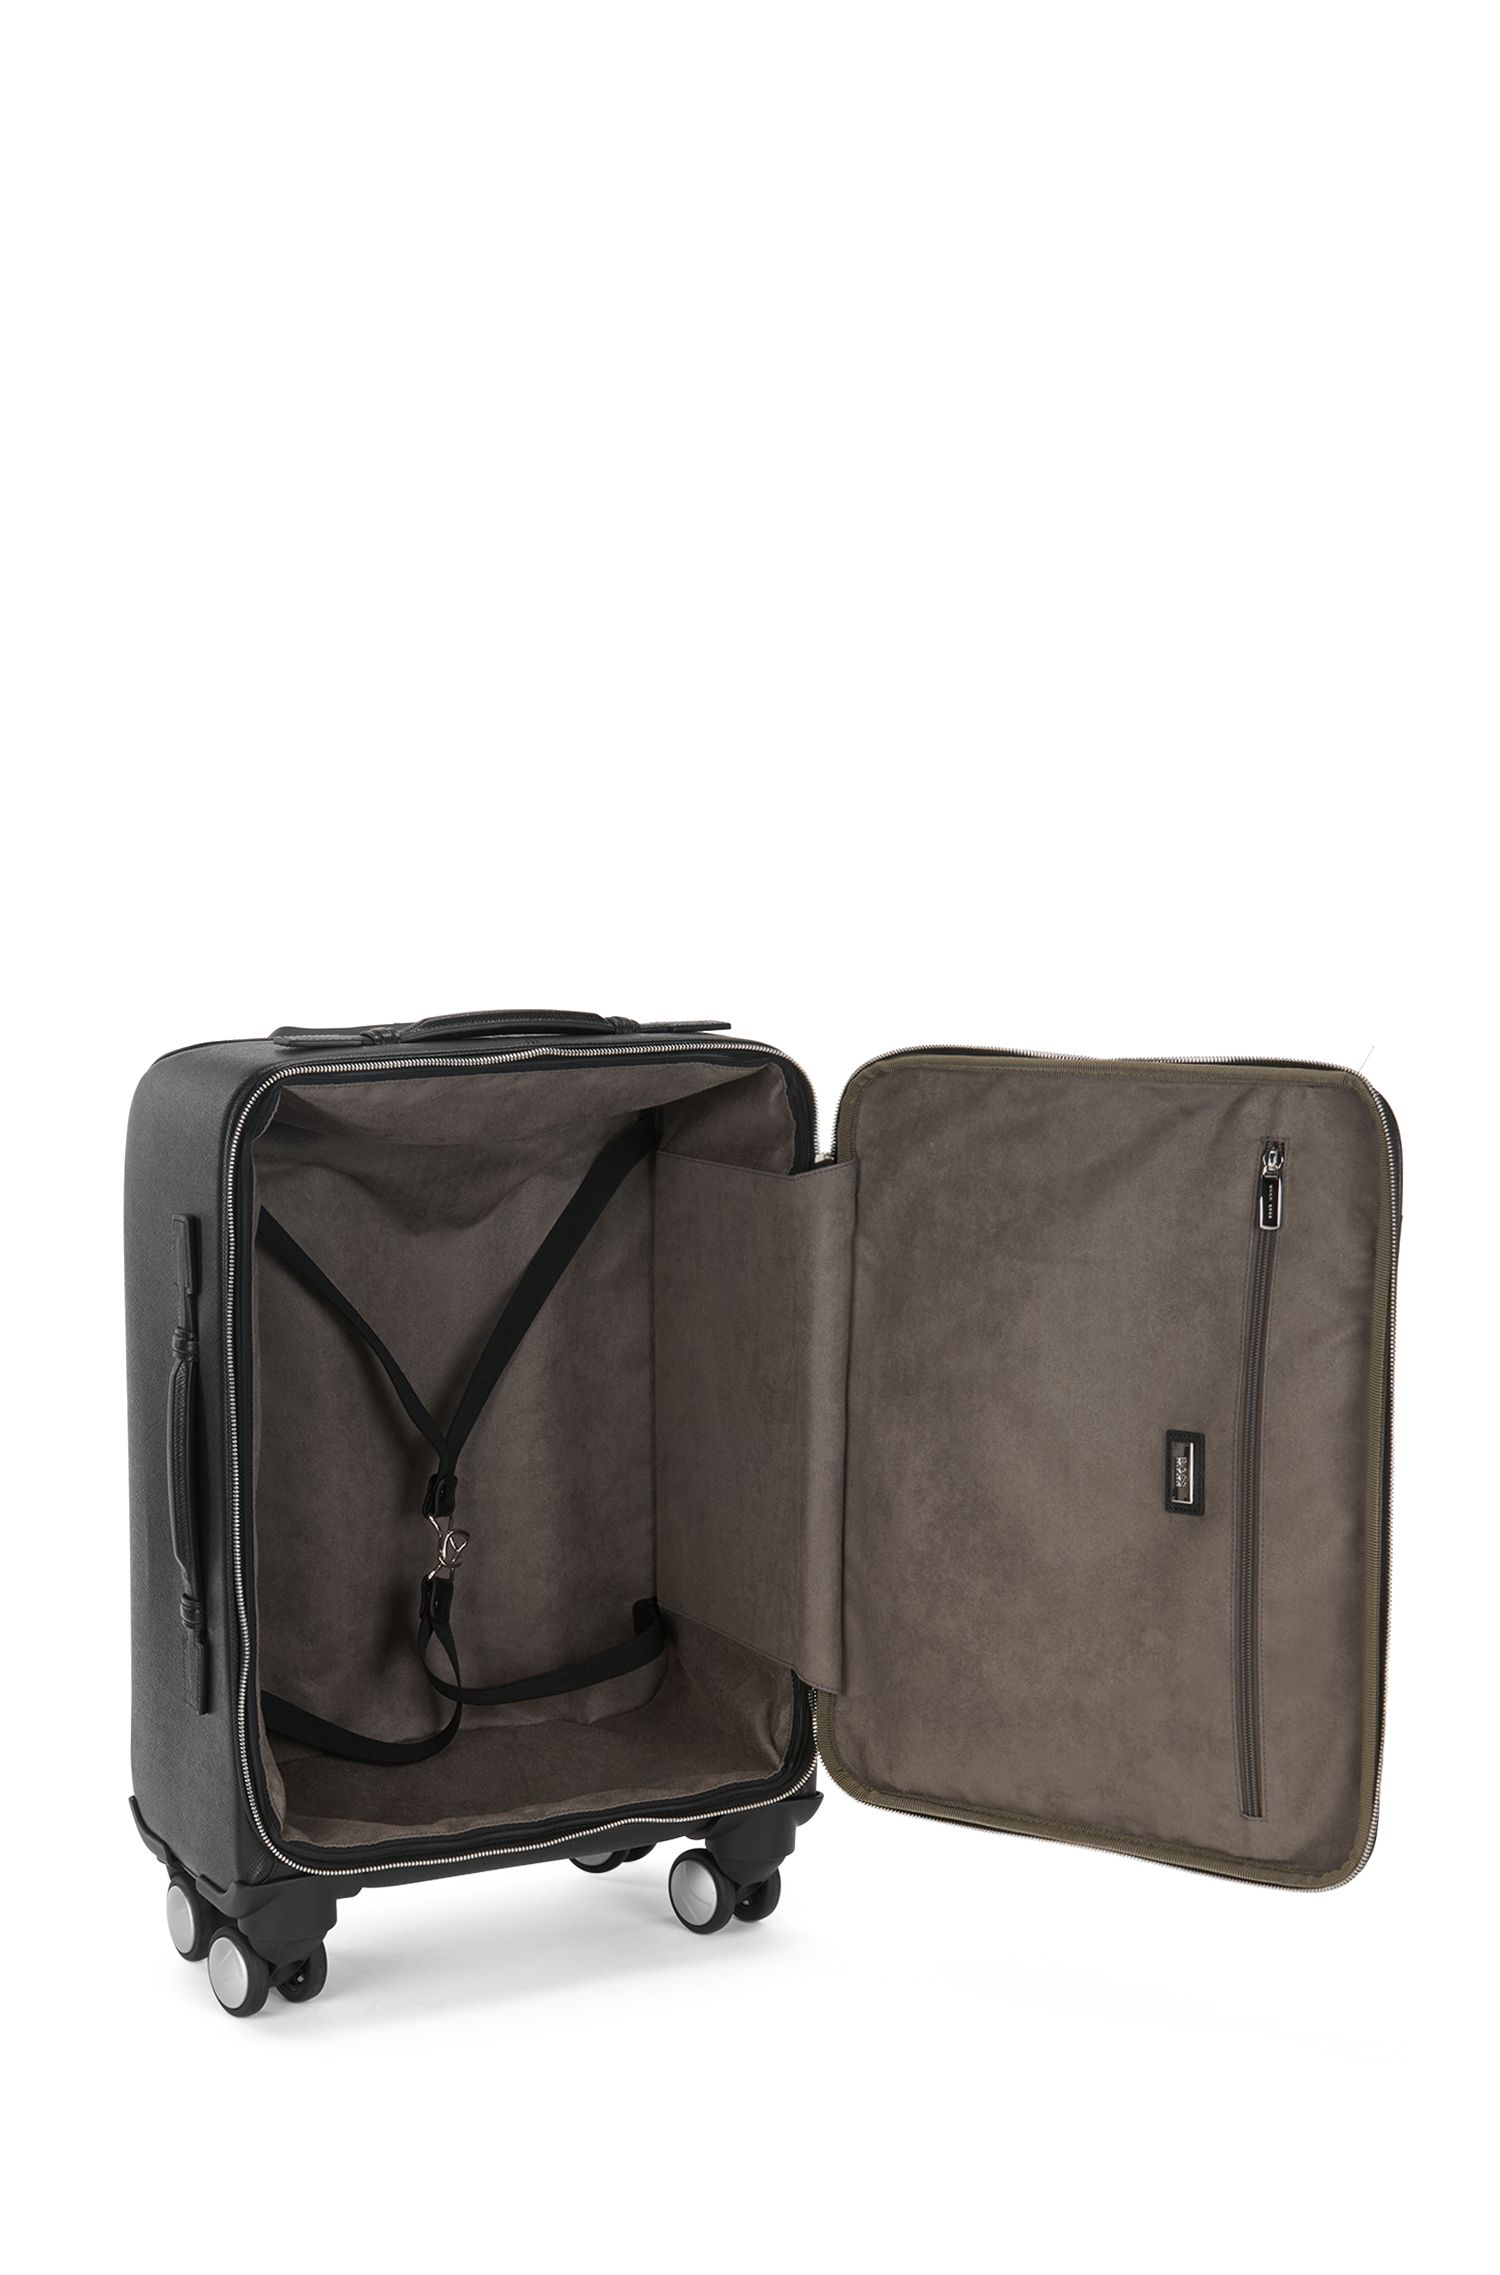 Palmellato Leather Carryon Luggage | Signature Trolley S18